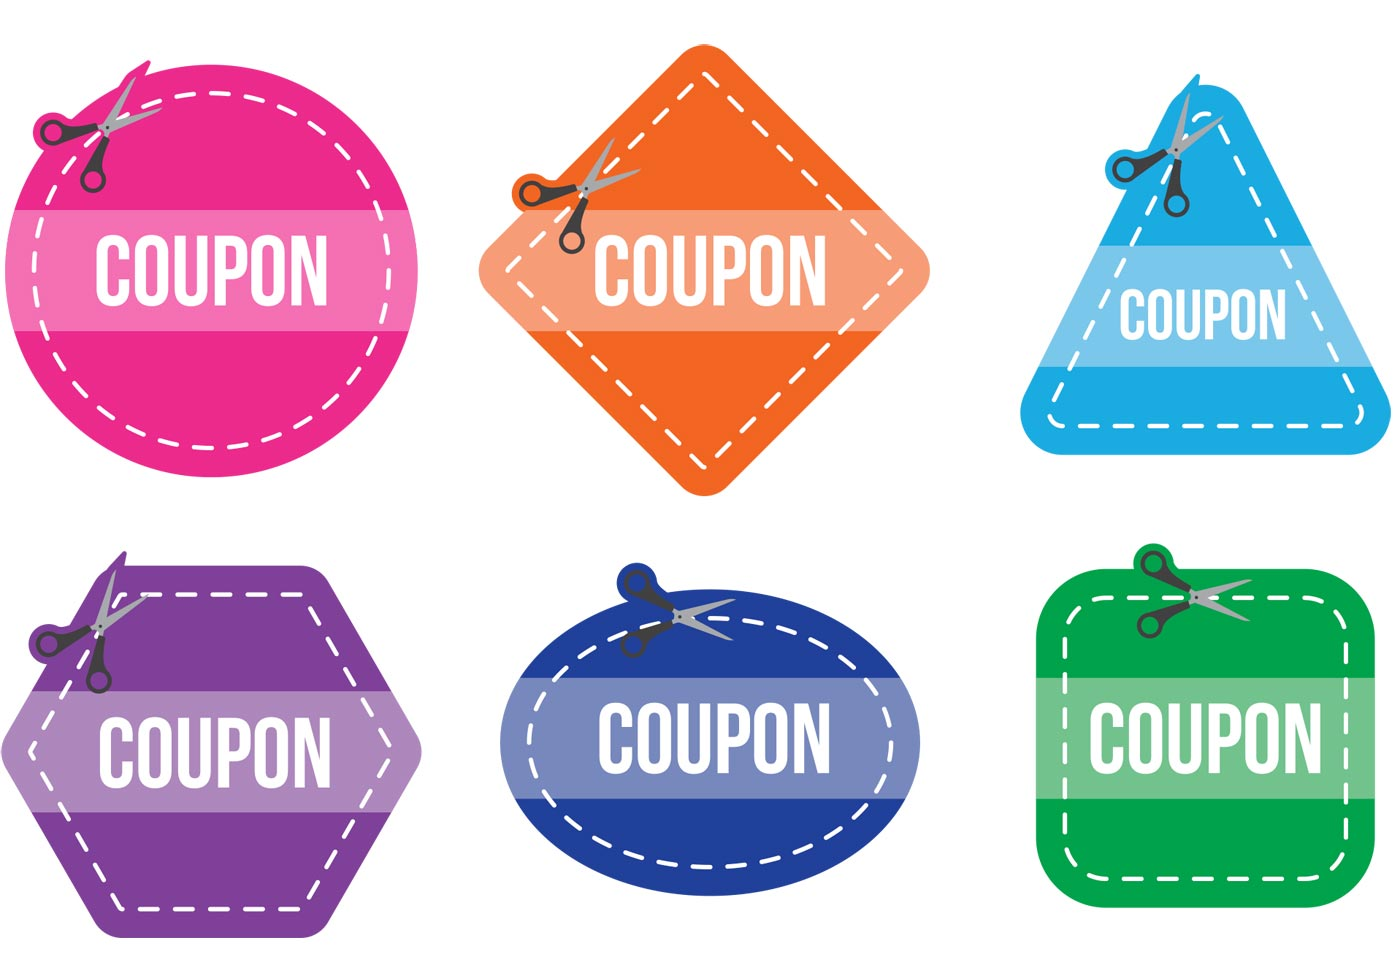 Coupons education